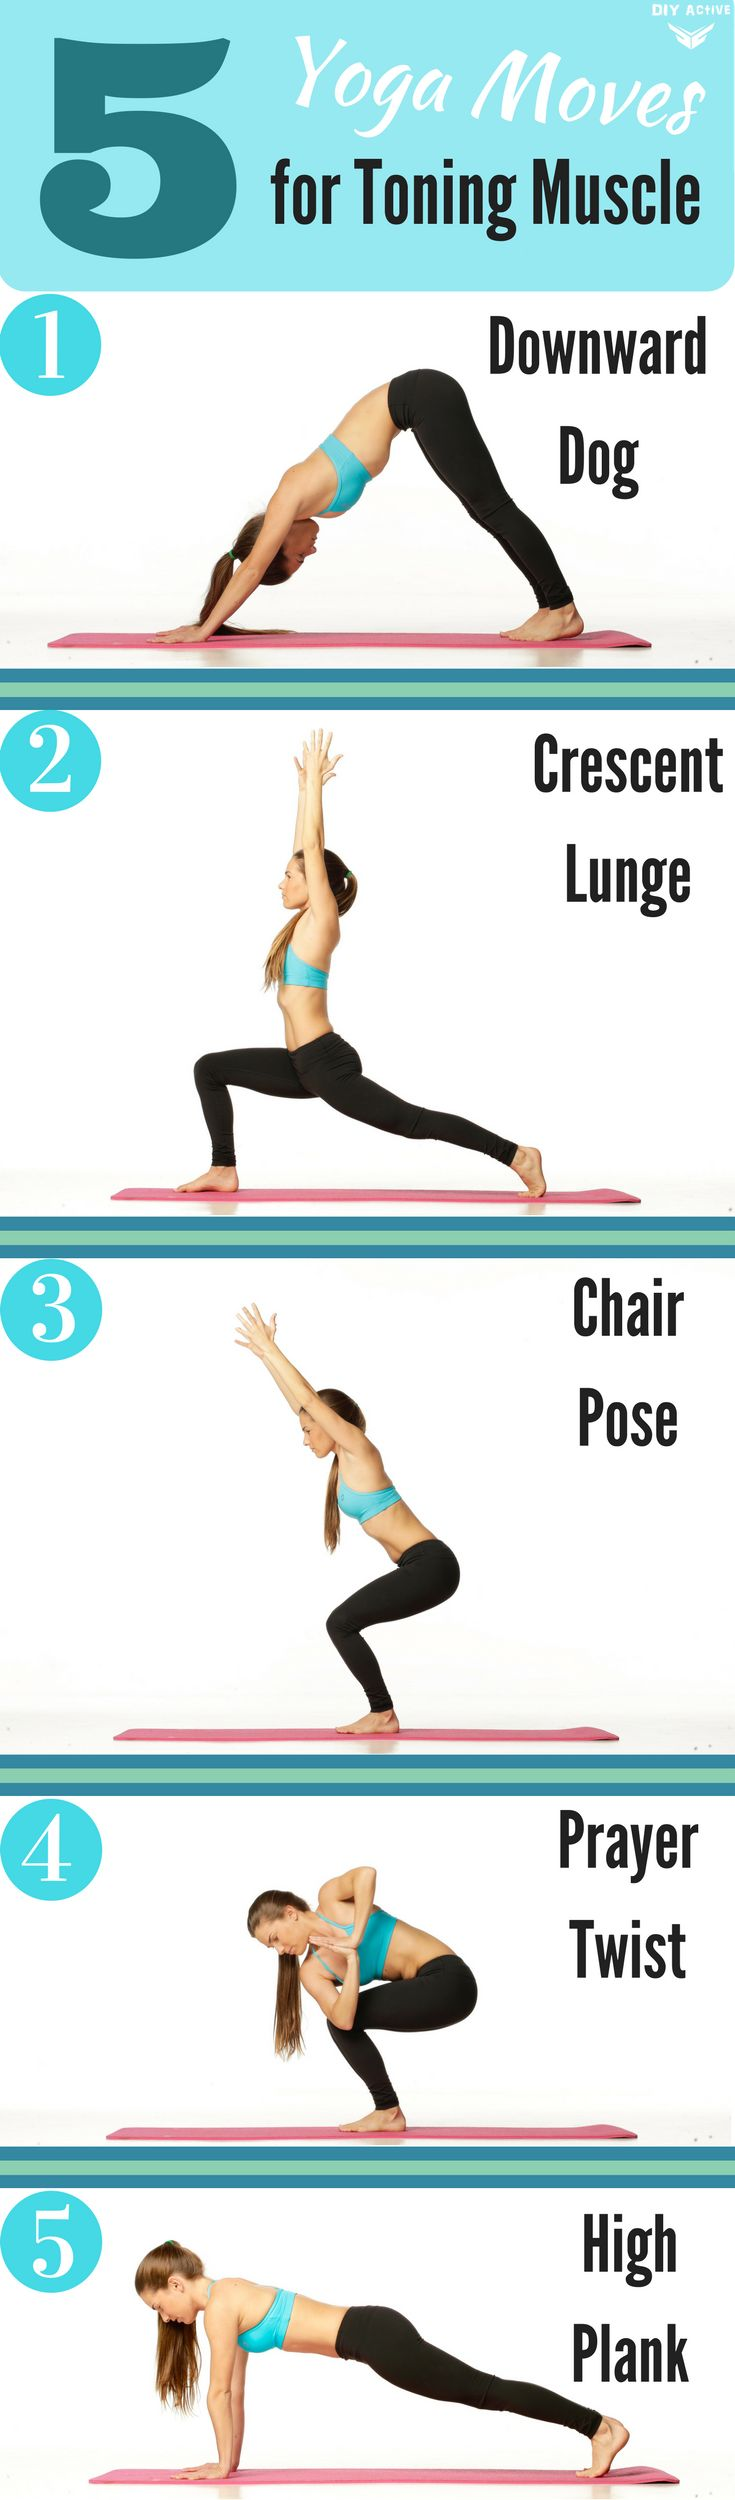 5 Yoga Moves for Toning Muscles via @DIYActiveHQ #yoga #exercise #workout